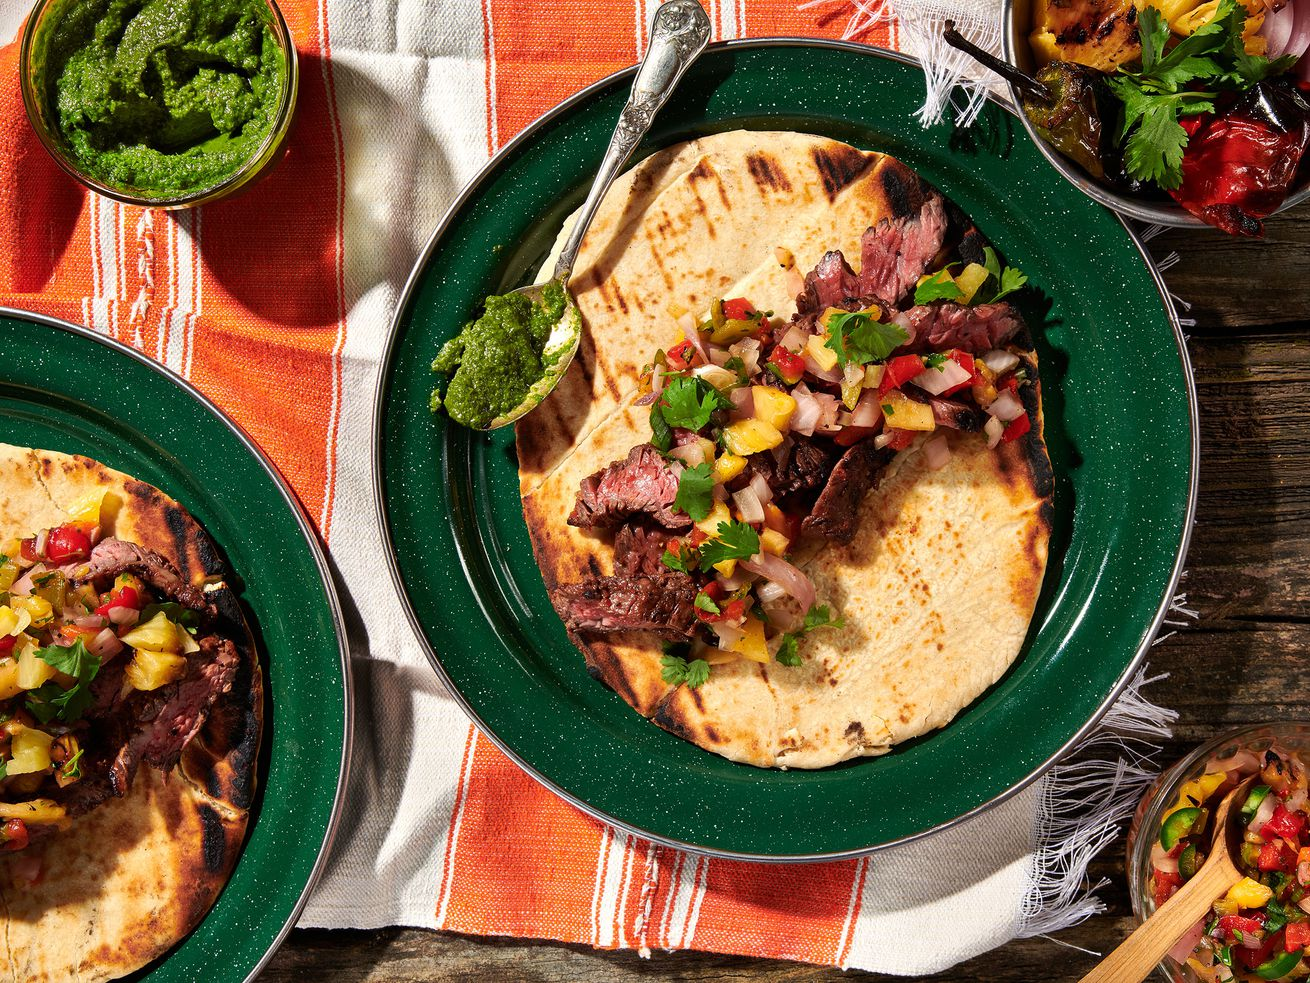 Skirt steak sliced and placed on top of naan, with pineapple, onion, and red pepper relish and chimichurri on top. Sides of roasted vegetables and a small bowl of chimichurri sit alongside.